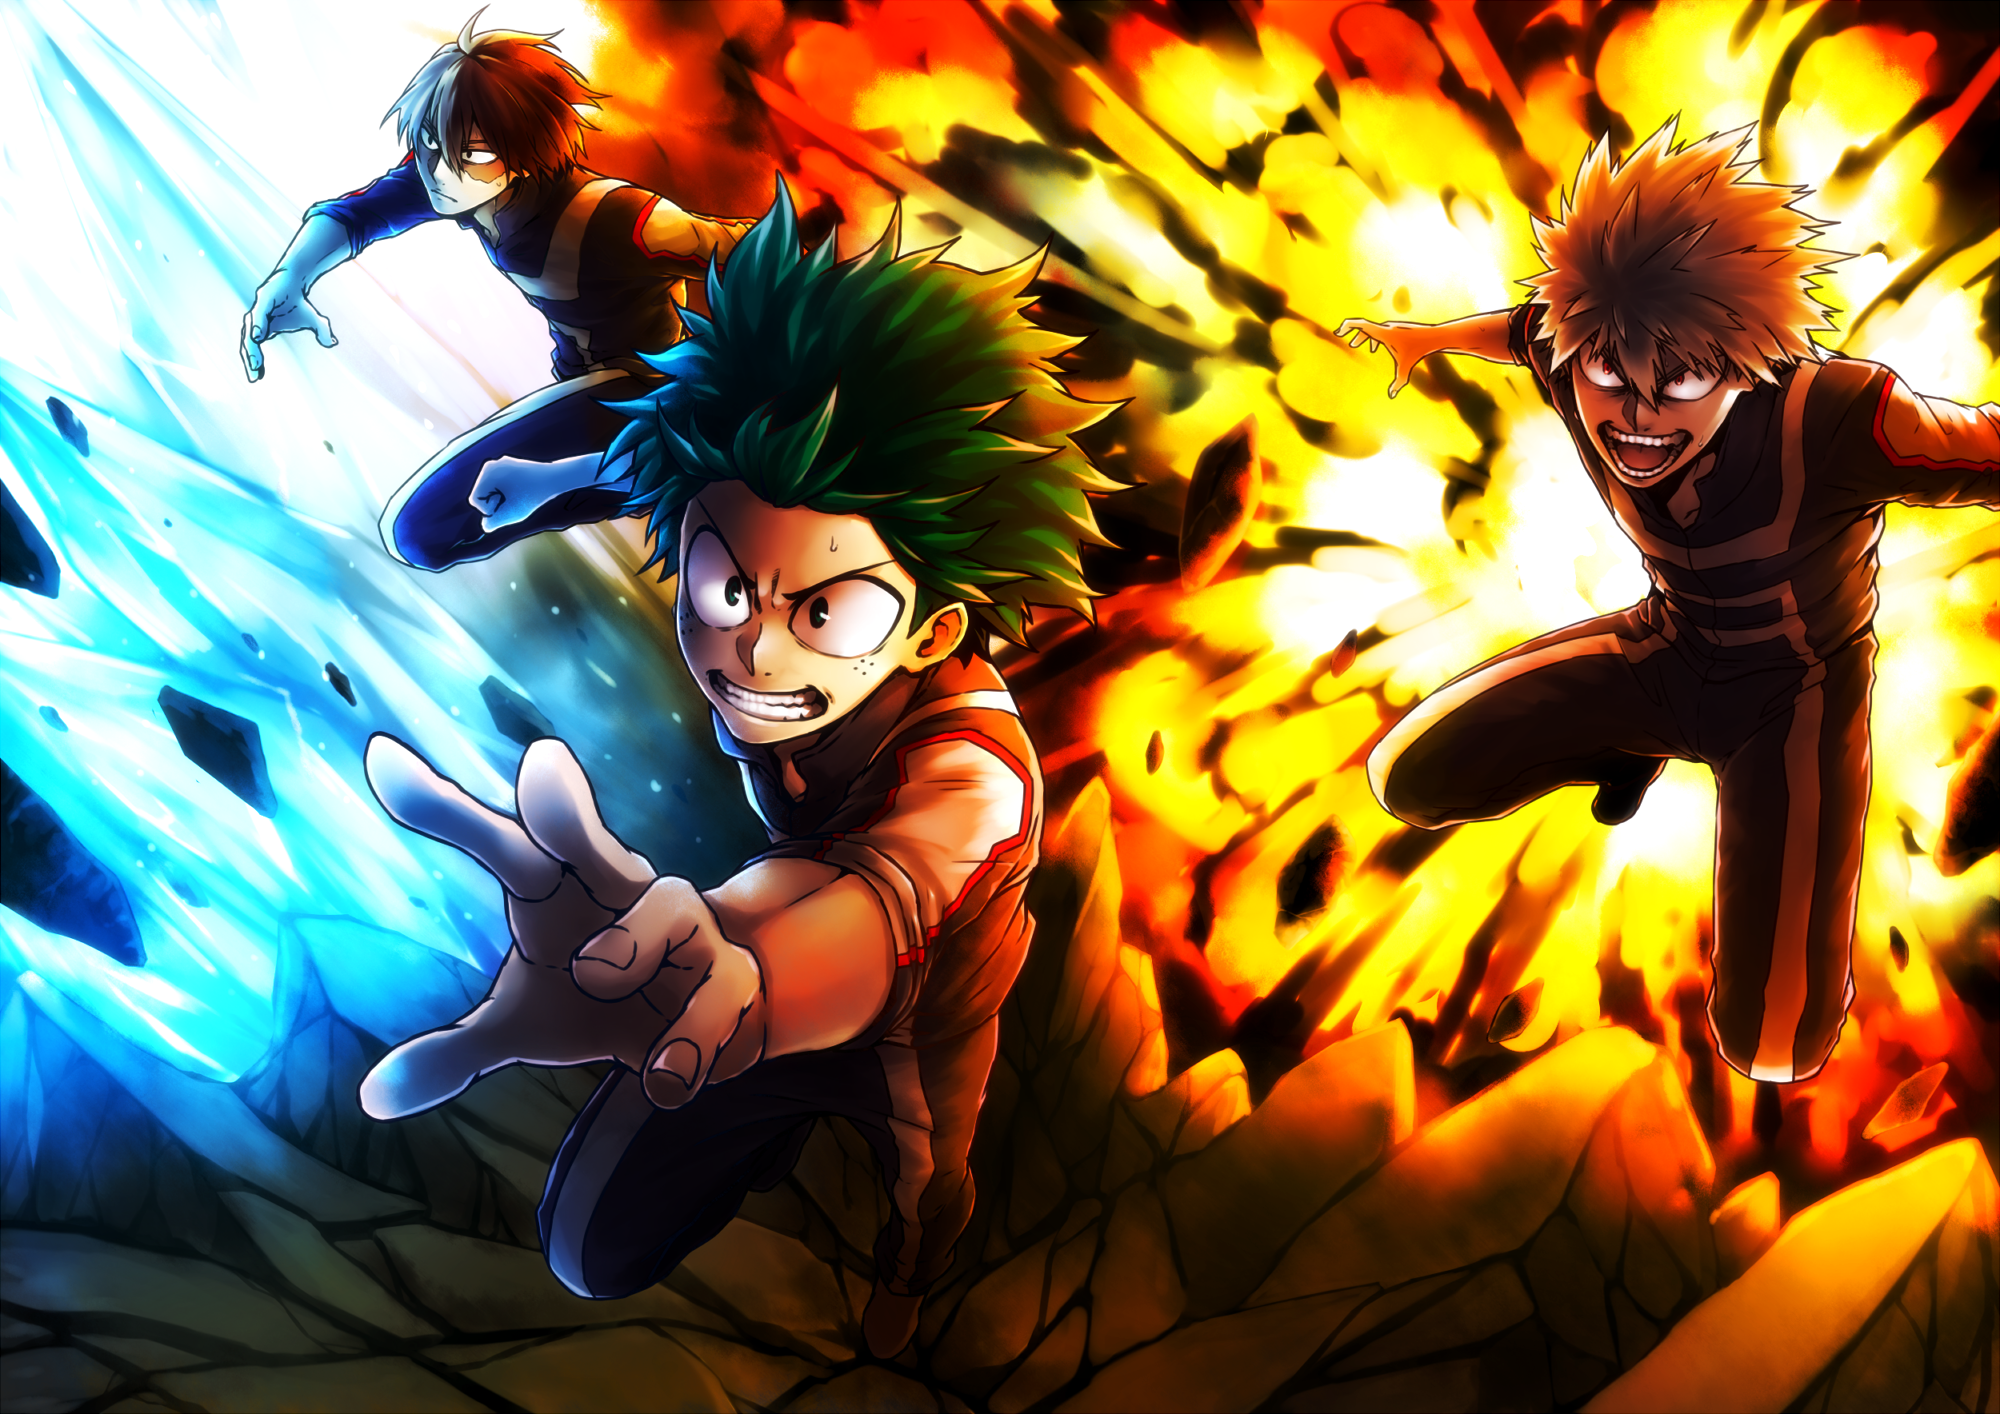 585 Katsuki Bakugou Hd Wallpapers Background Images Wallpaper